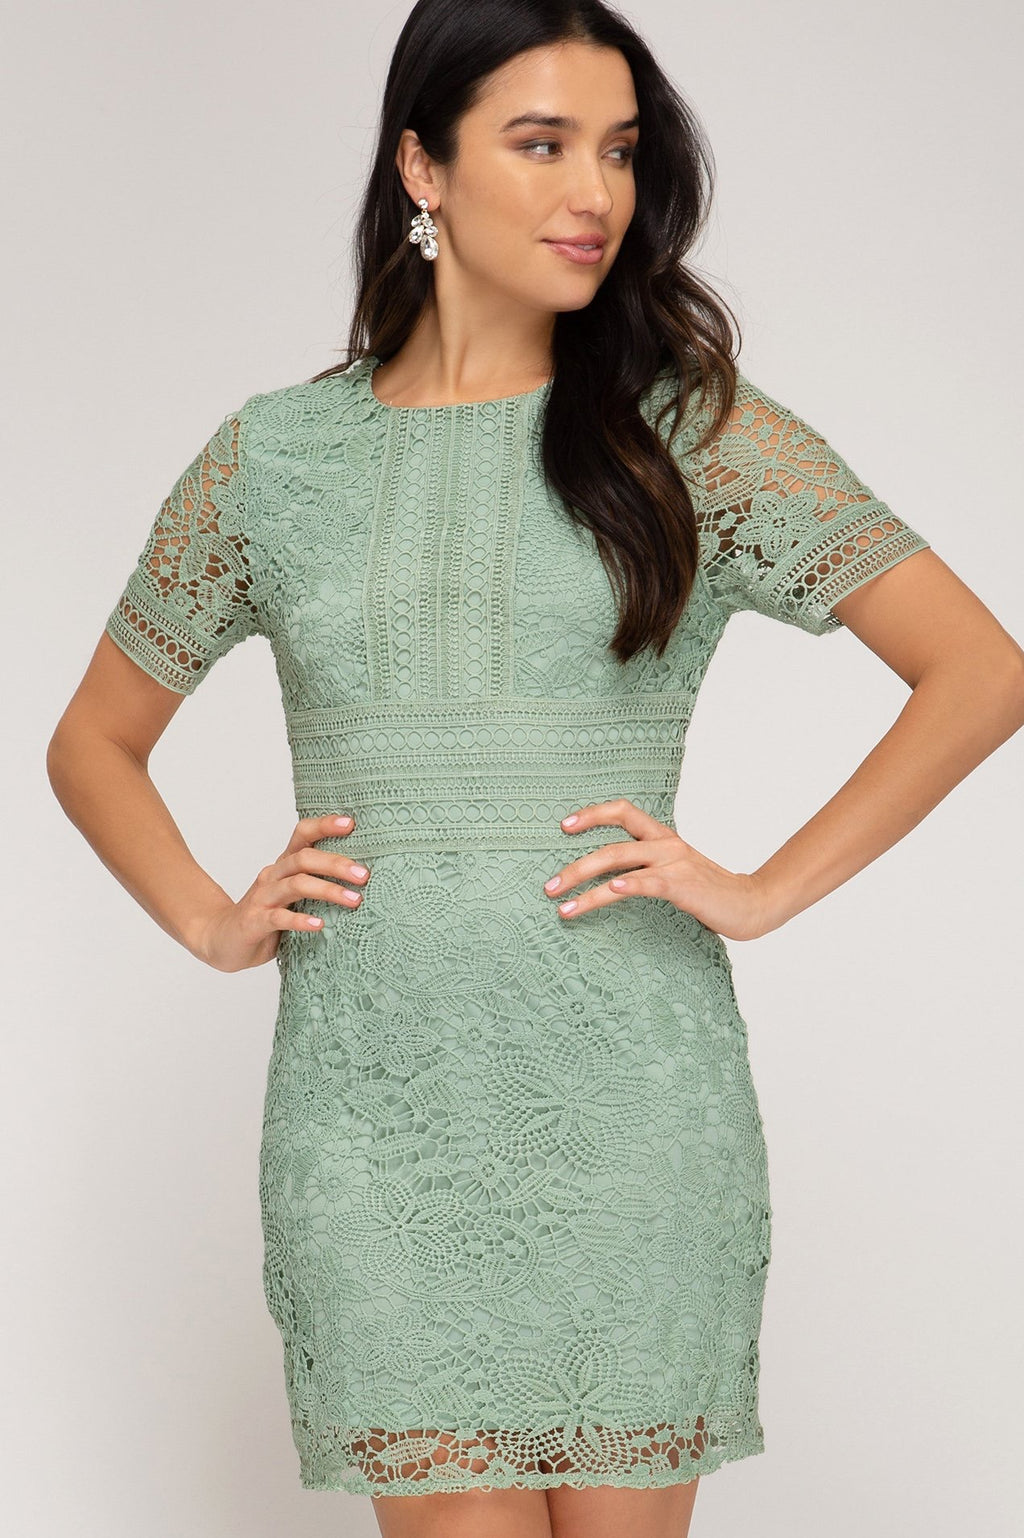 Crochet Short Sleeve Lace Dress - Artemisia Clothing Shop